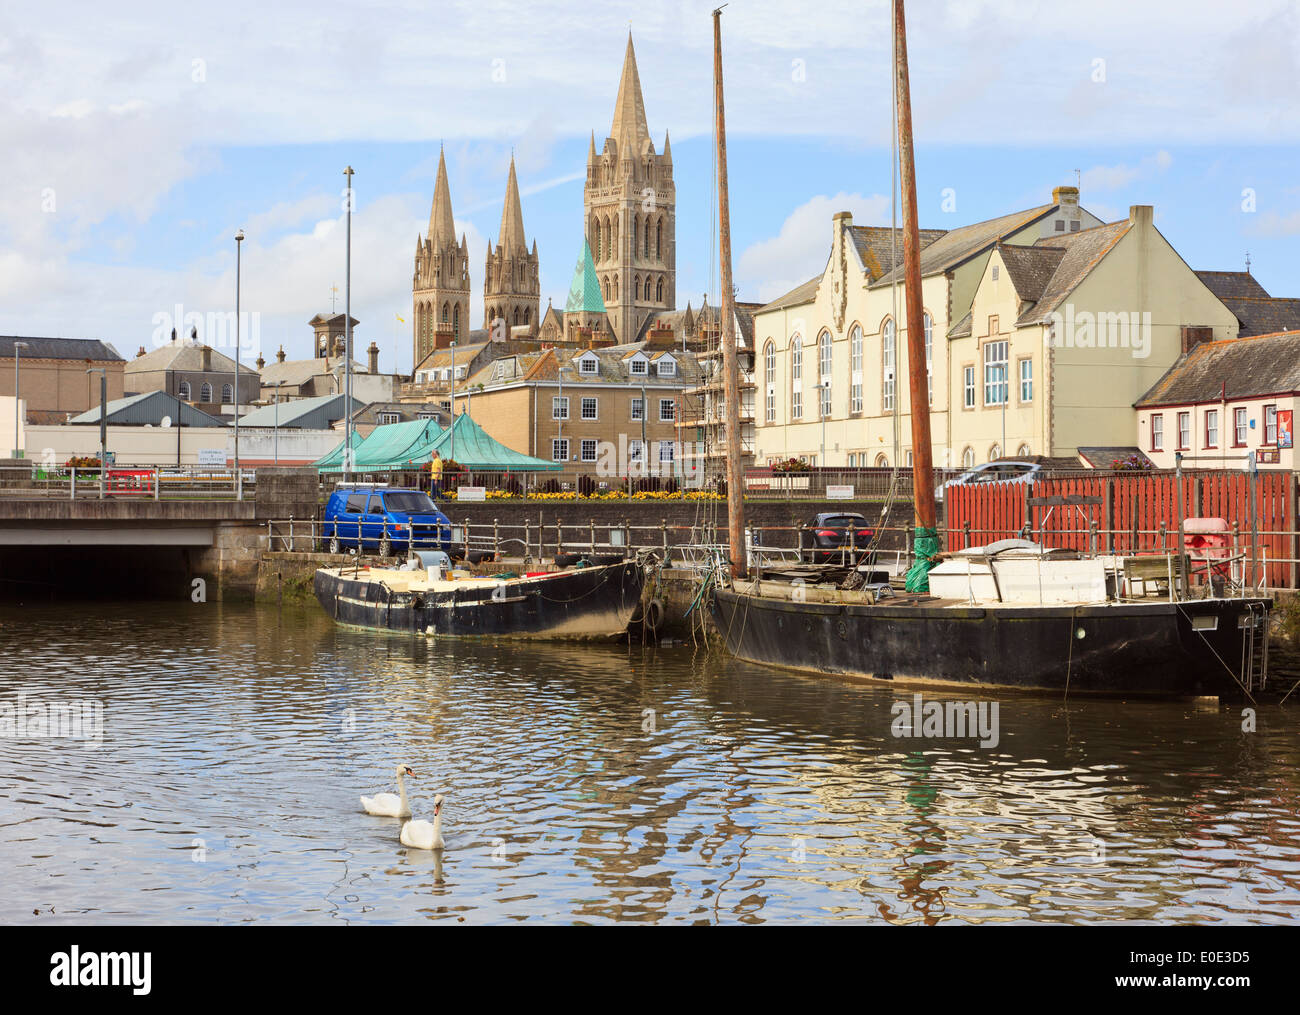 View across River Truro towards the city and three spires of the Cathedral in Truro, Cornwall, England, UK, Great Britain - Stock Image